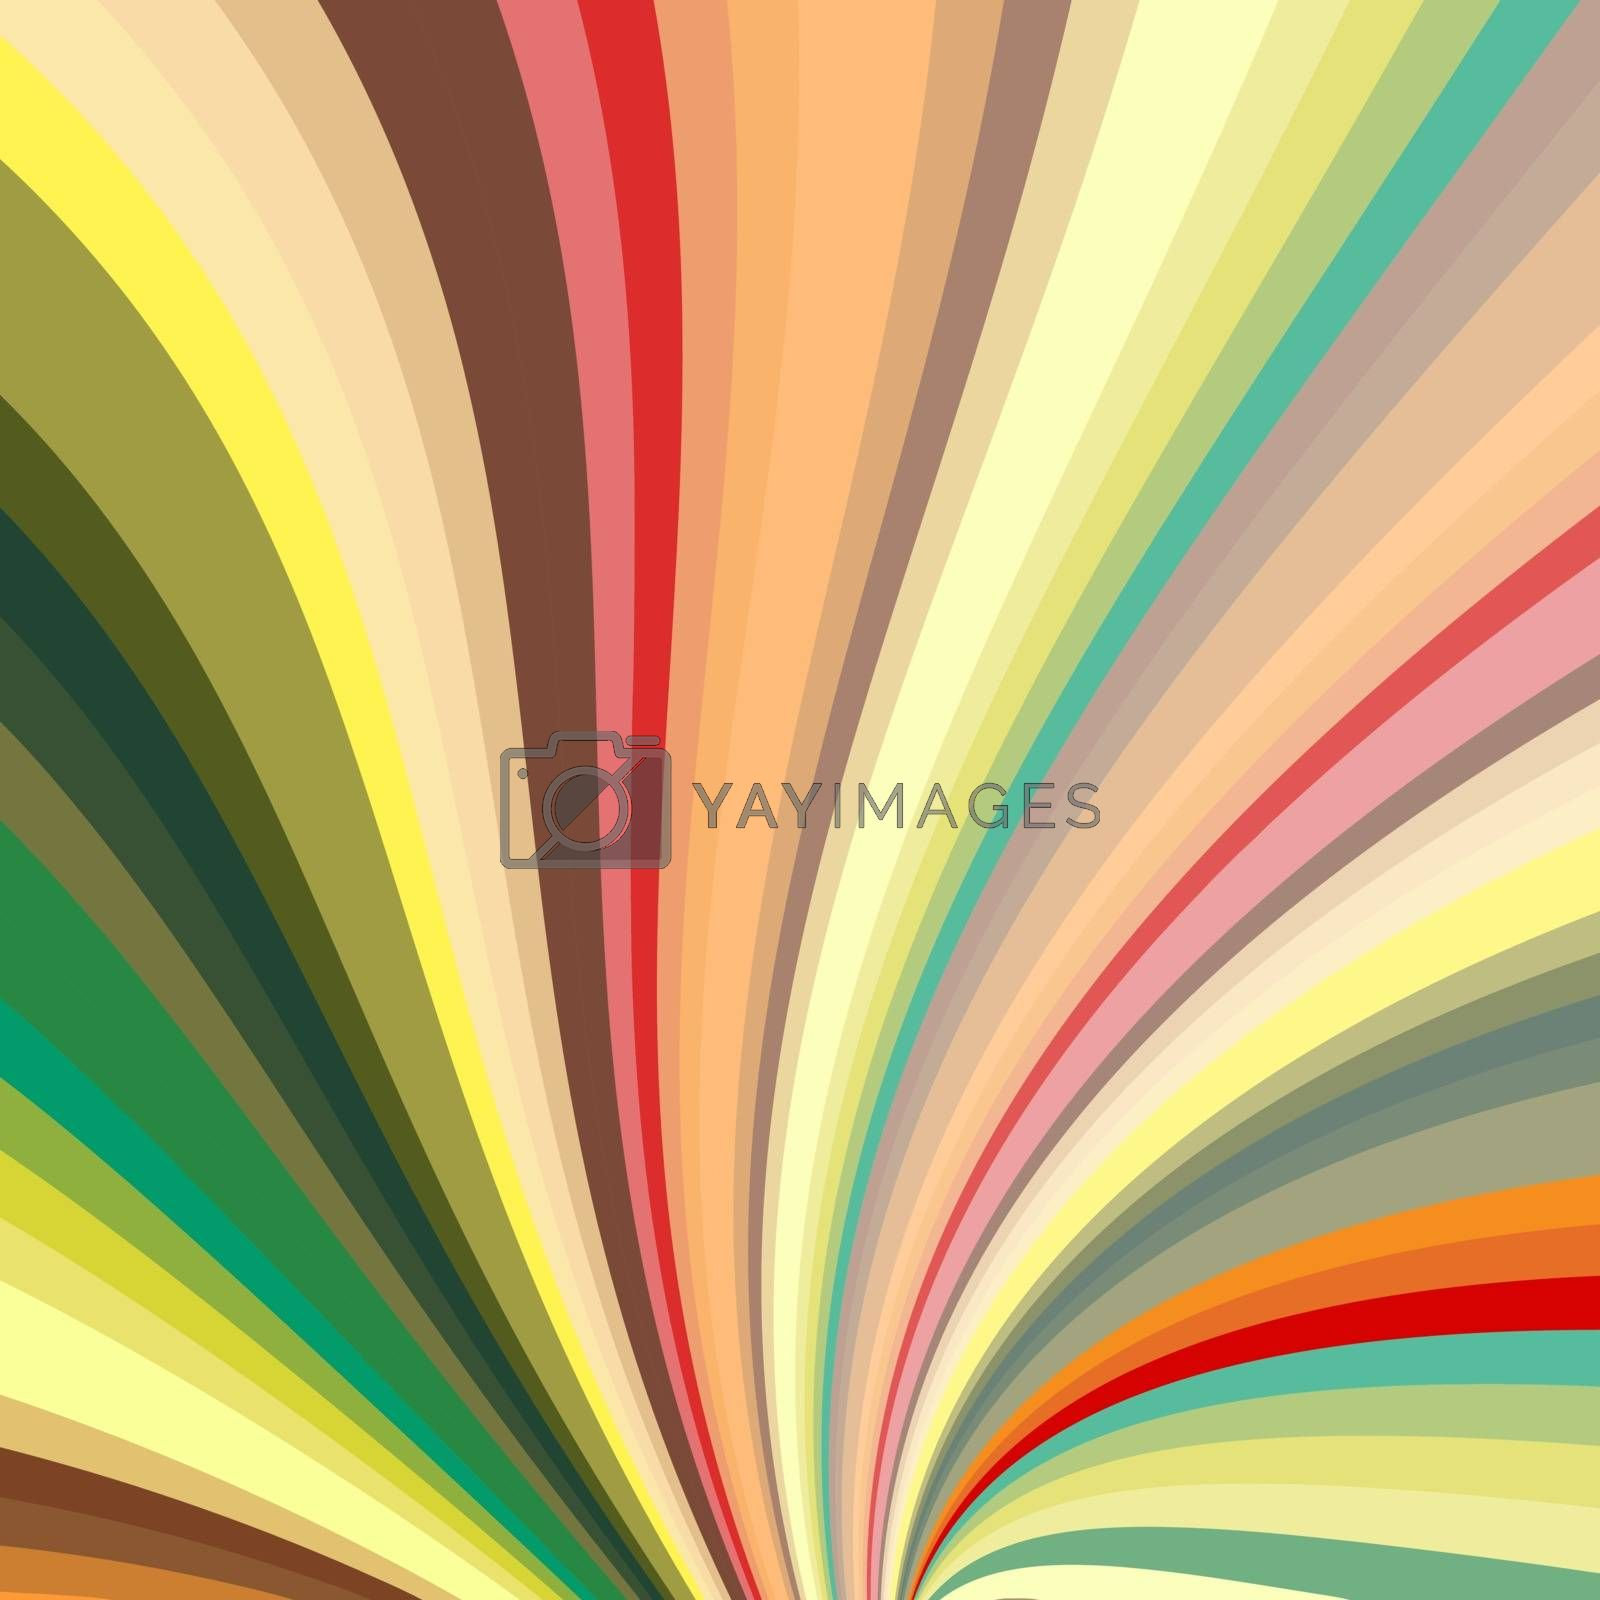 Abstract colorful background. Vector illustration. Can be used for wallpaper, web page background, web banners.